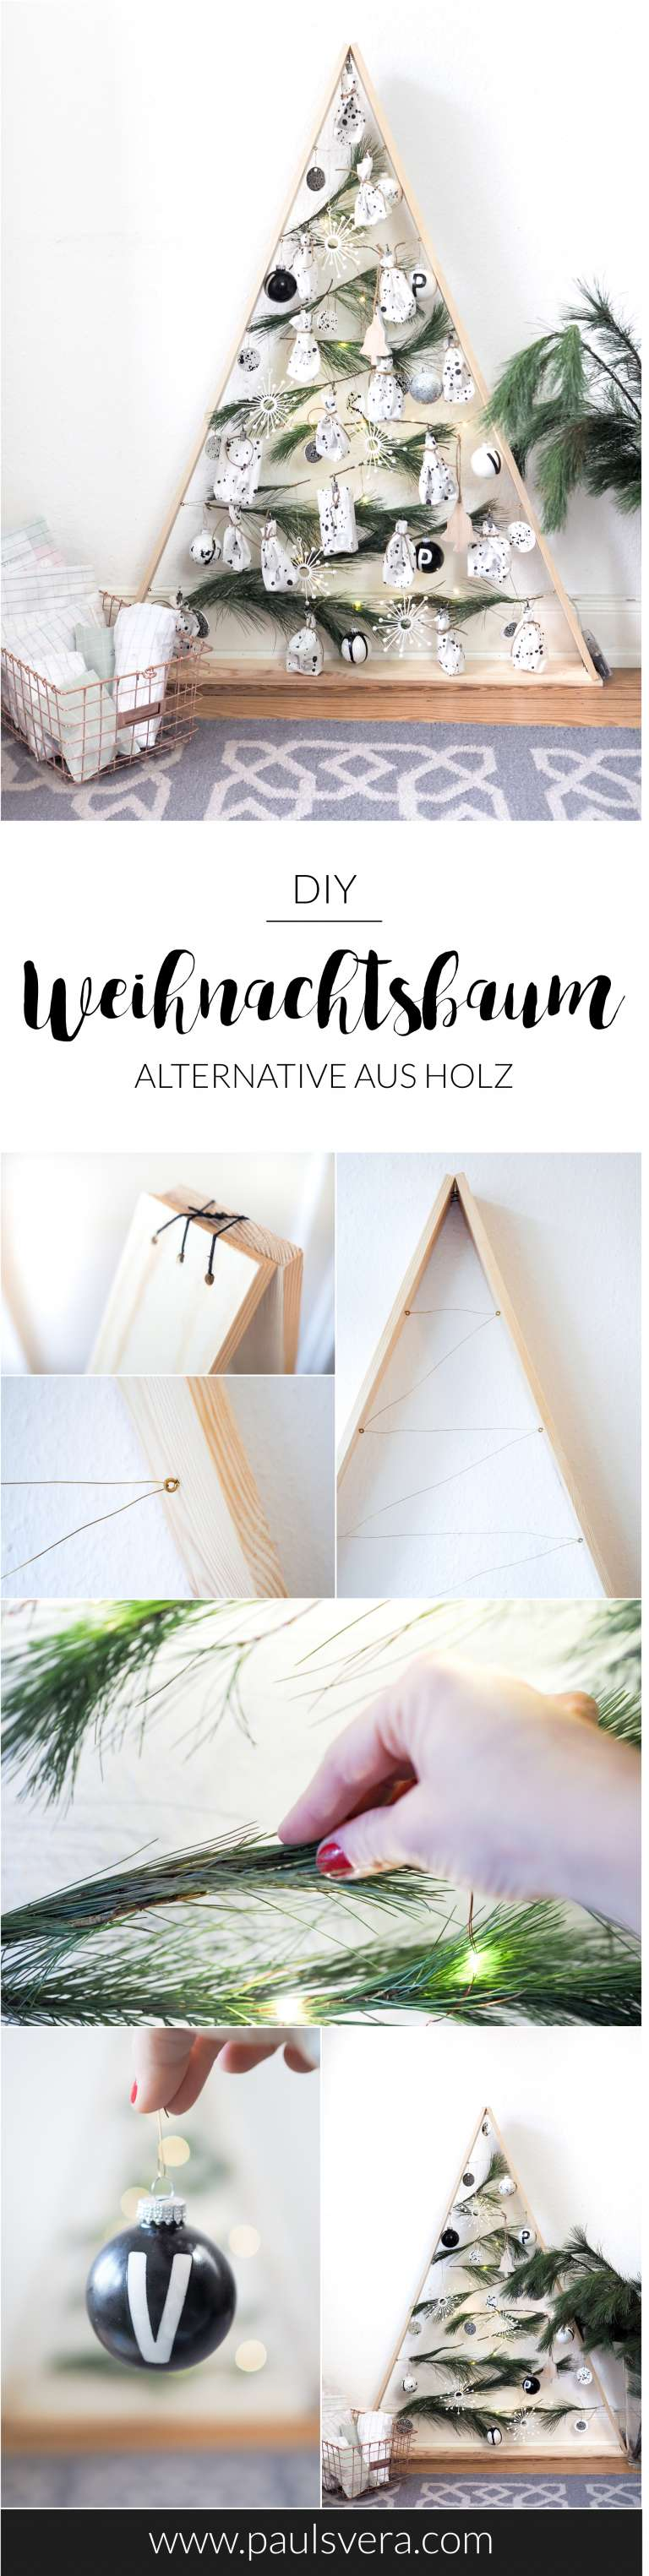 diy weihnachtsbaum aus holz obsigen. Black Bedroom Furniture Sets. Home Design Ideas